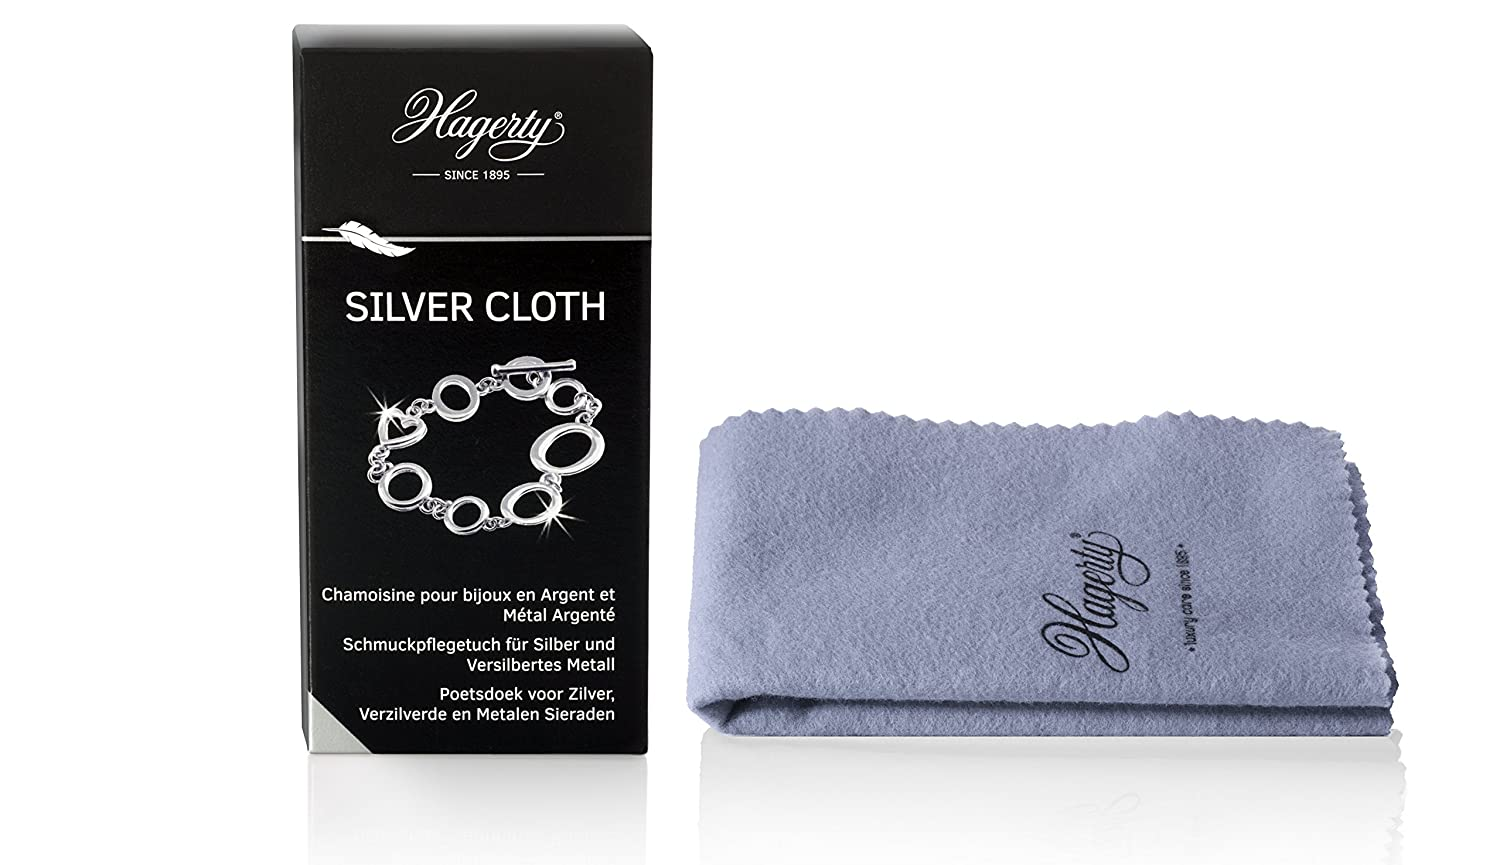 Silver Cloth - clean and care for your premium silver goods Hagerty A116018